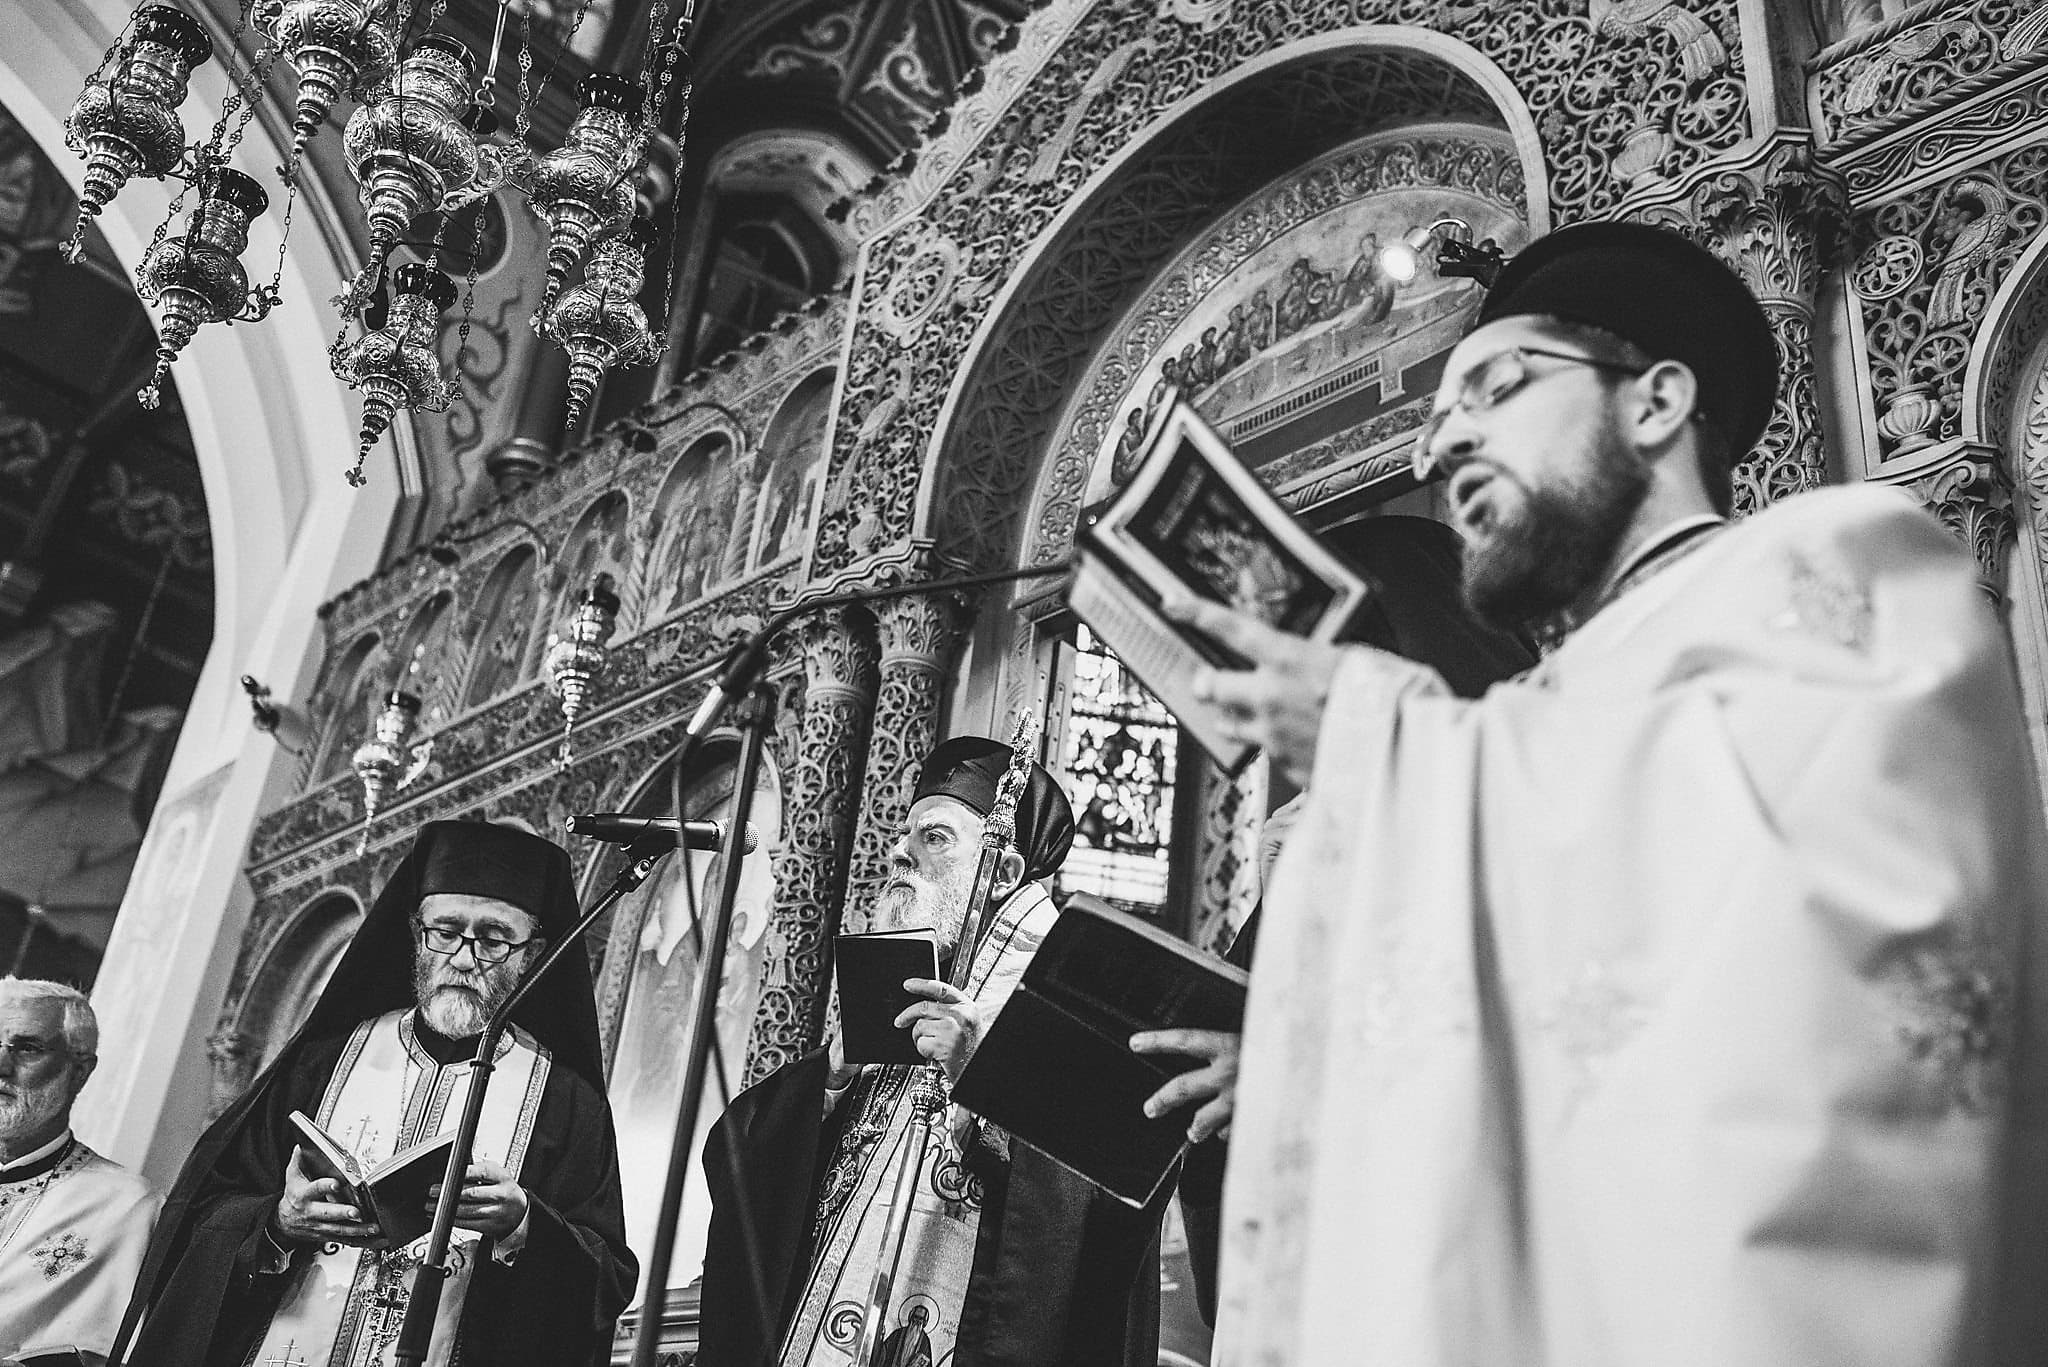 Greek priests singing hymns during a Greek Orthodox Ceremony at Saint Andrew's Greek Orthodox Church